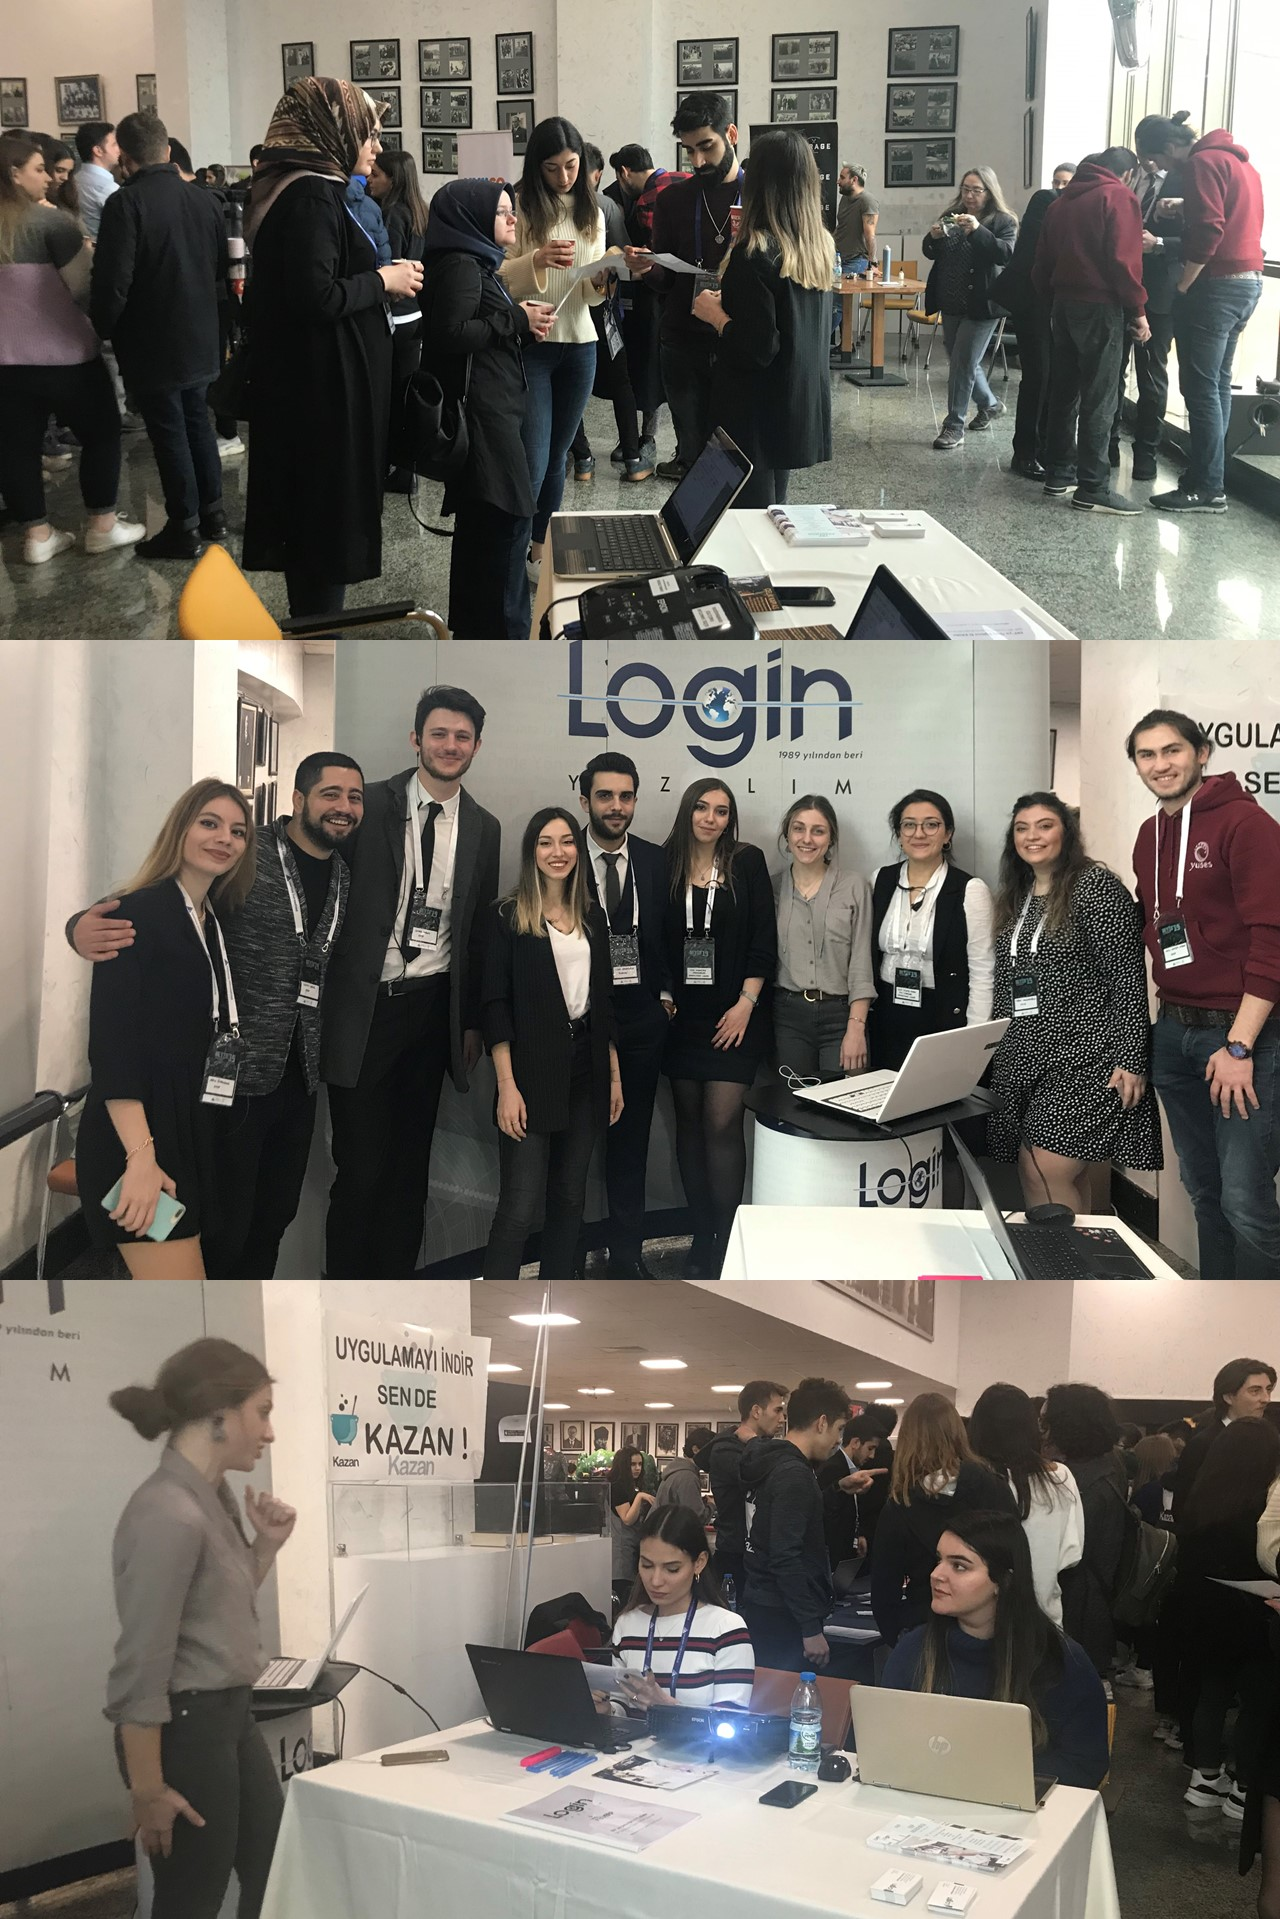 Login Software Has Realized An ERP Simulation in Yeditepe University's YUSES BEYİN'19